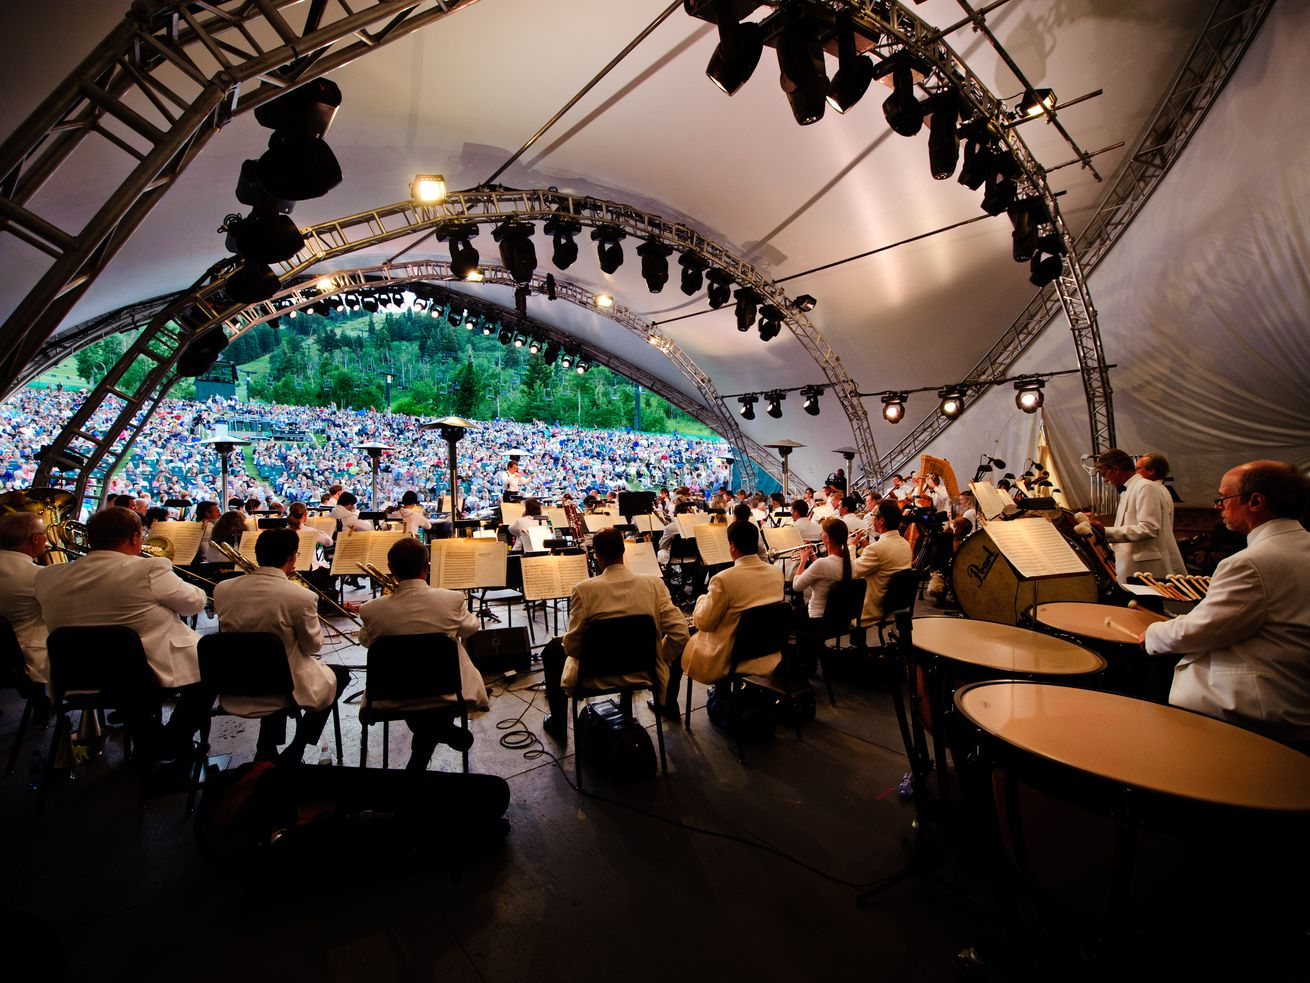 Members of the Utah Symphony play in Deer Valley's Snow Park Amphitheater. This summer will be the 15th year of the Deer Valley Music Festival.